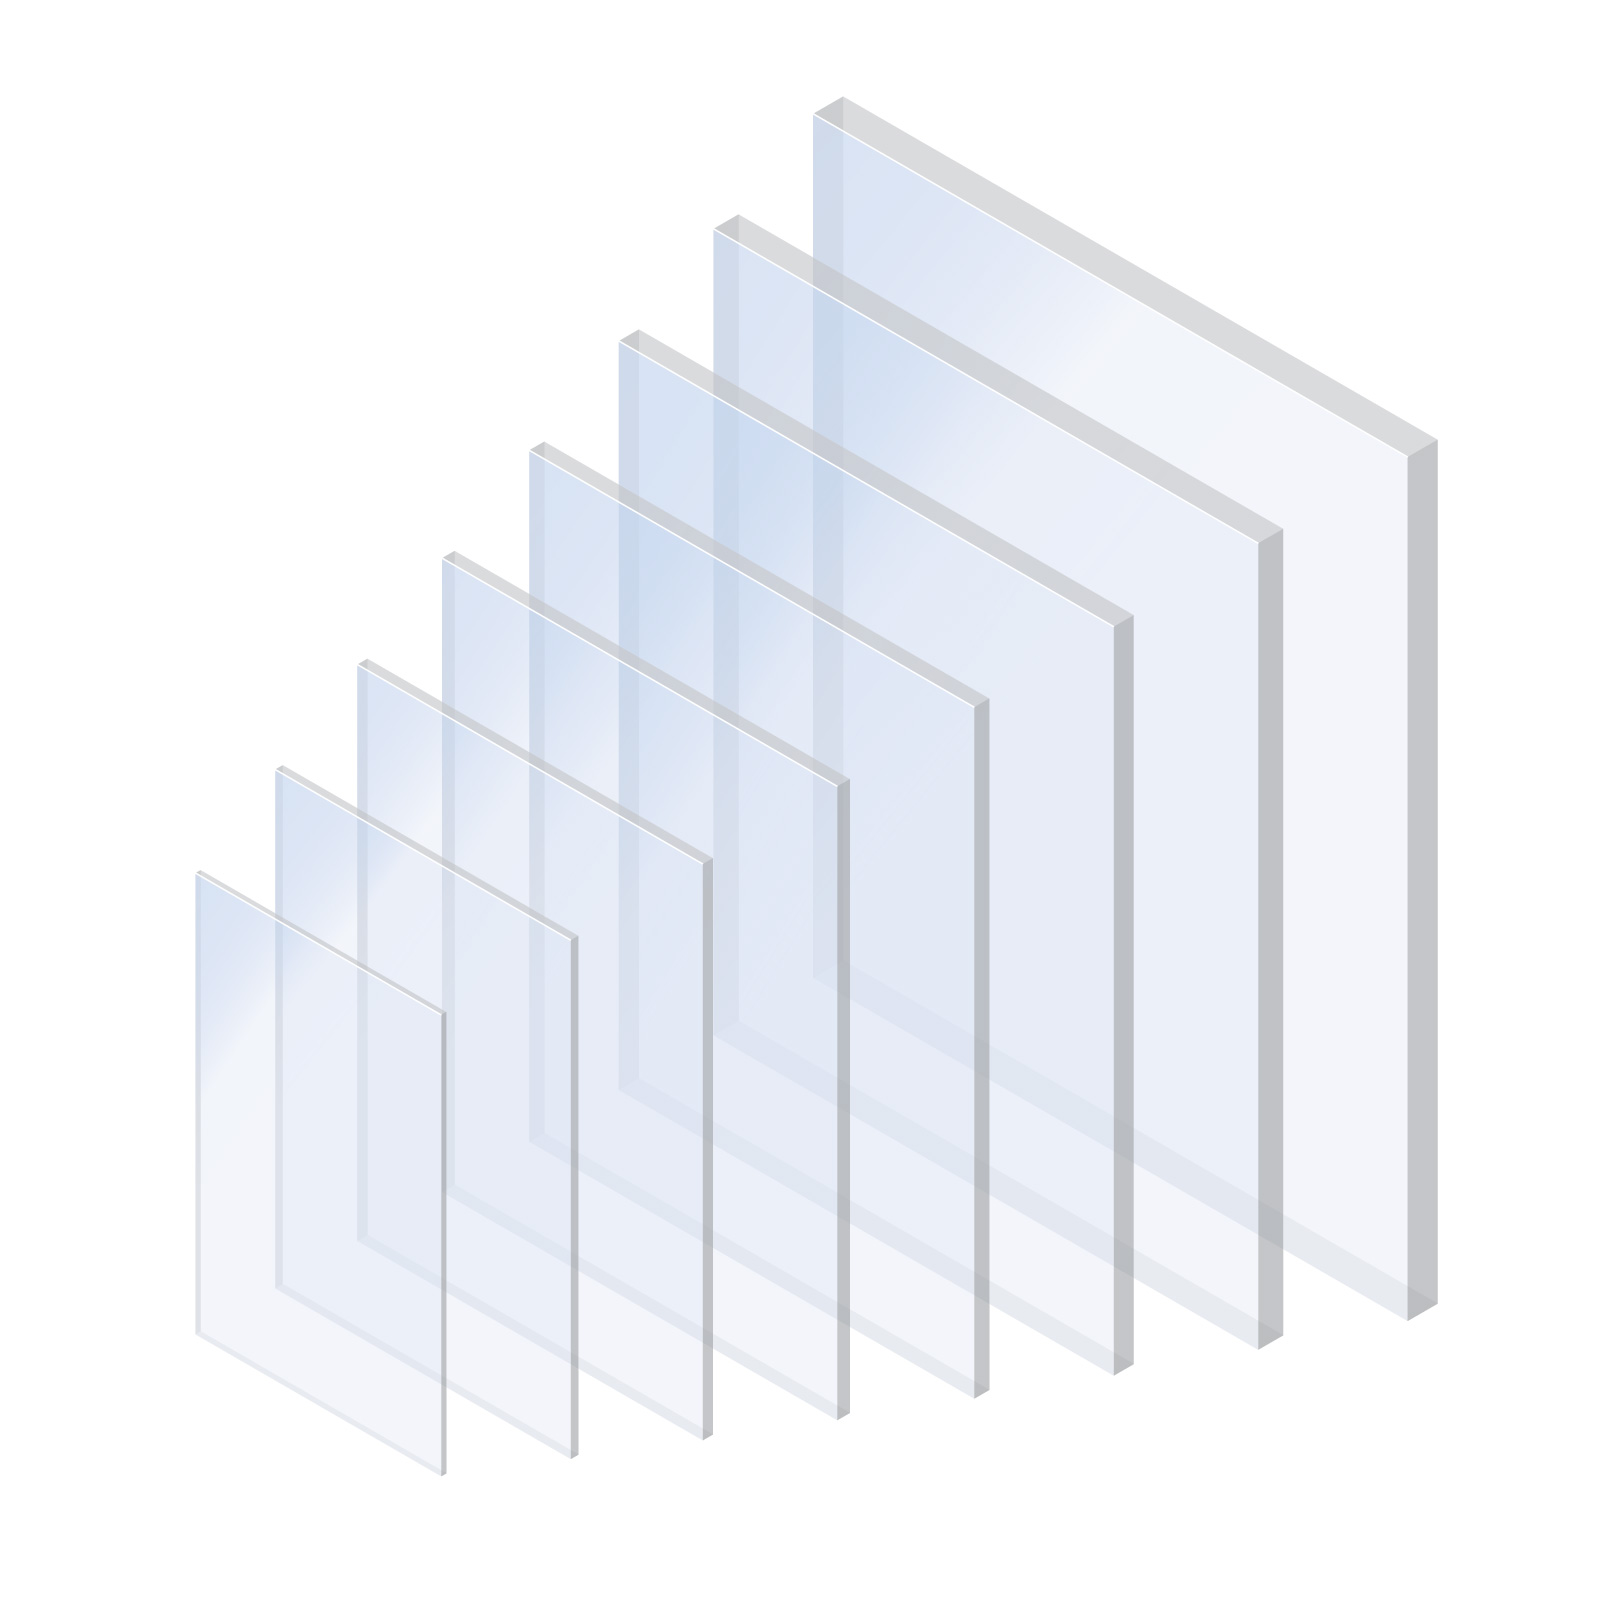 Axgard 3mm Clear UV Protect Polycarbonate Sheet All Sizes